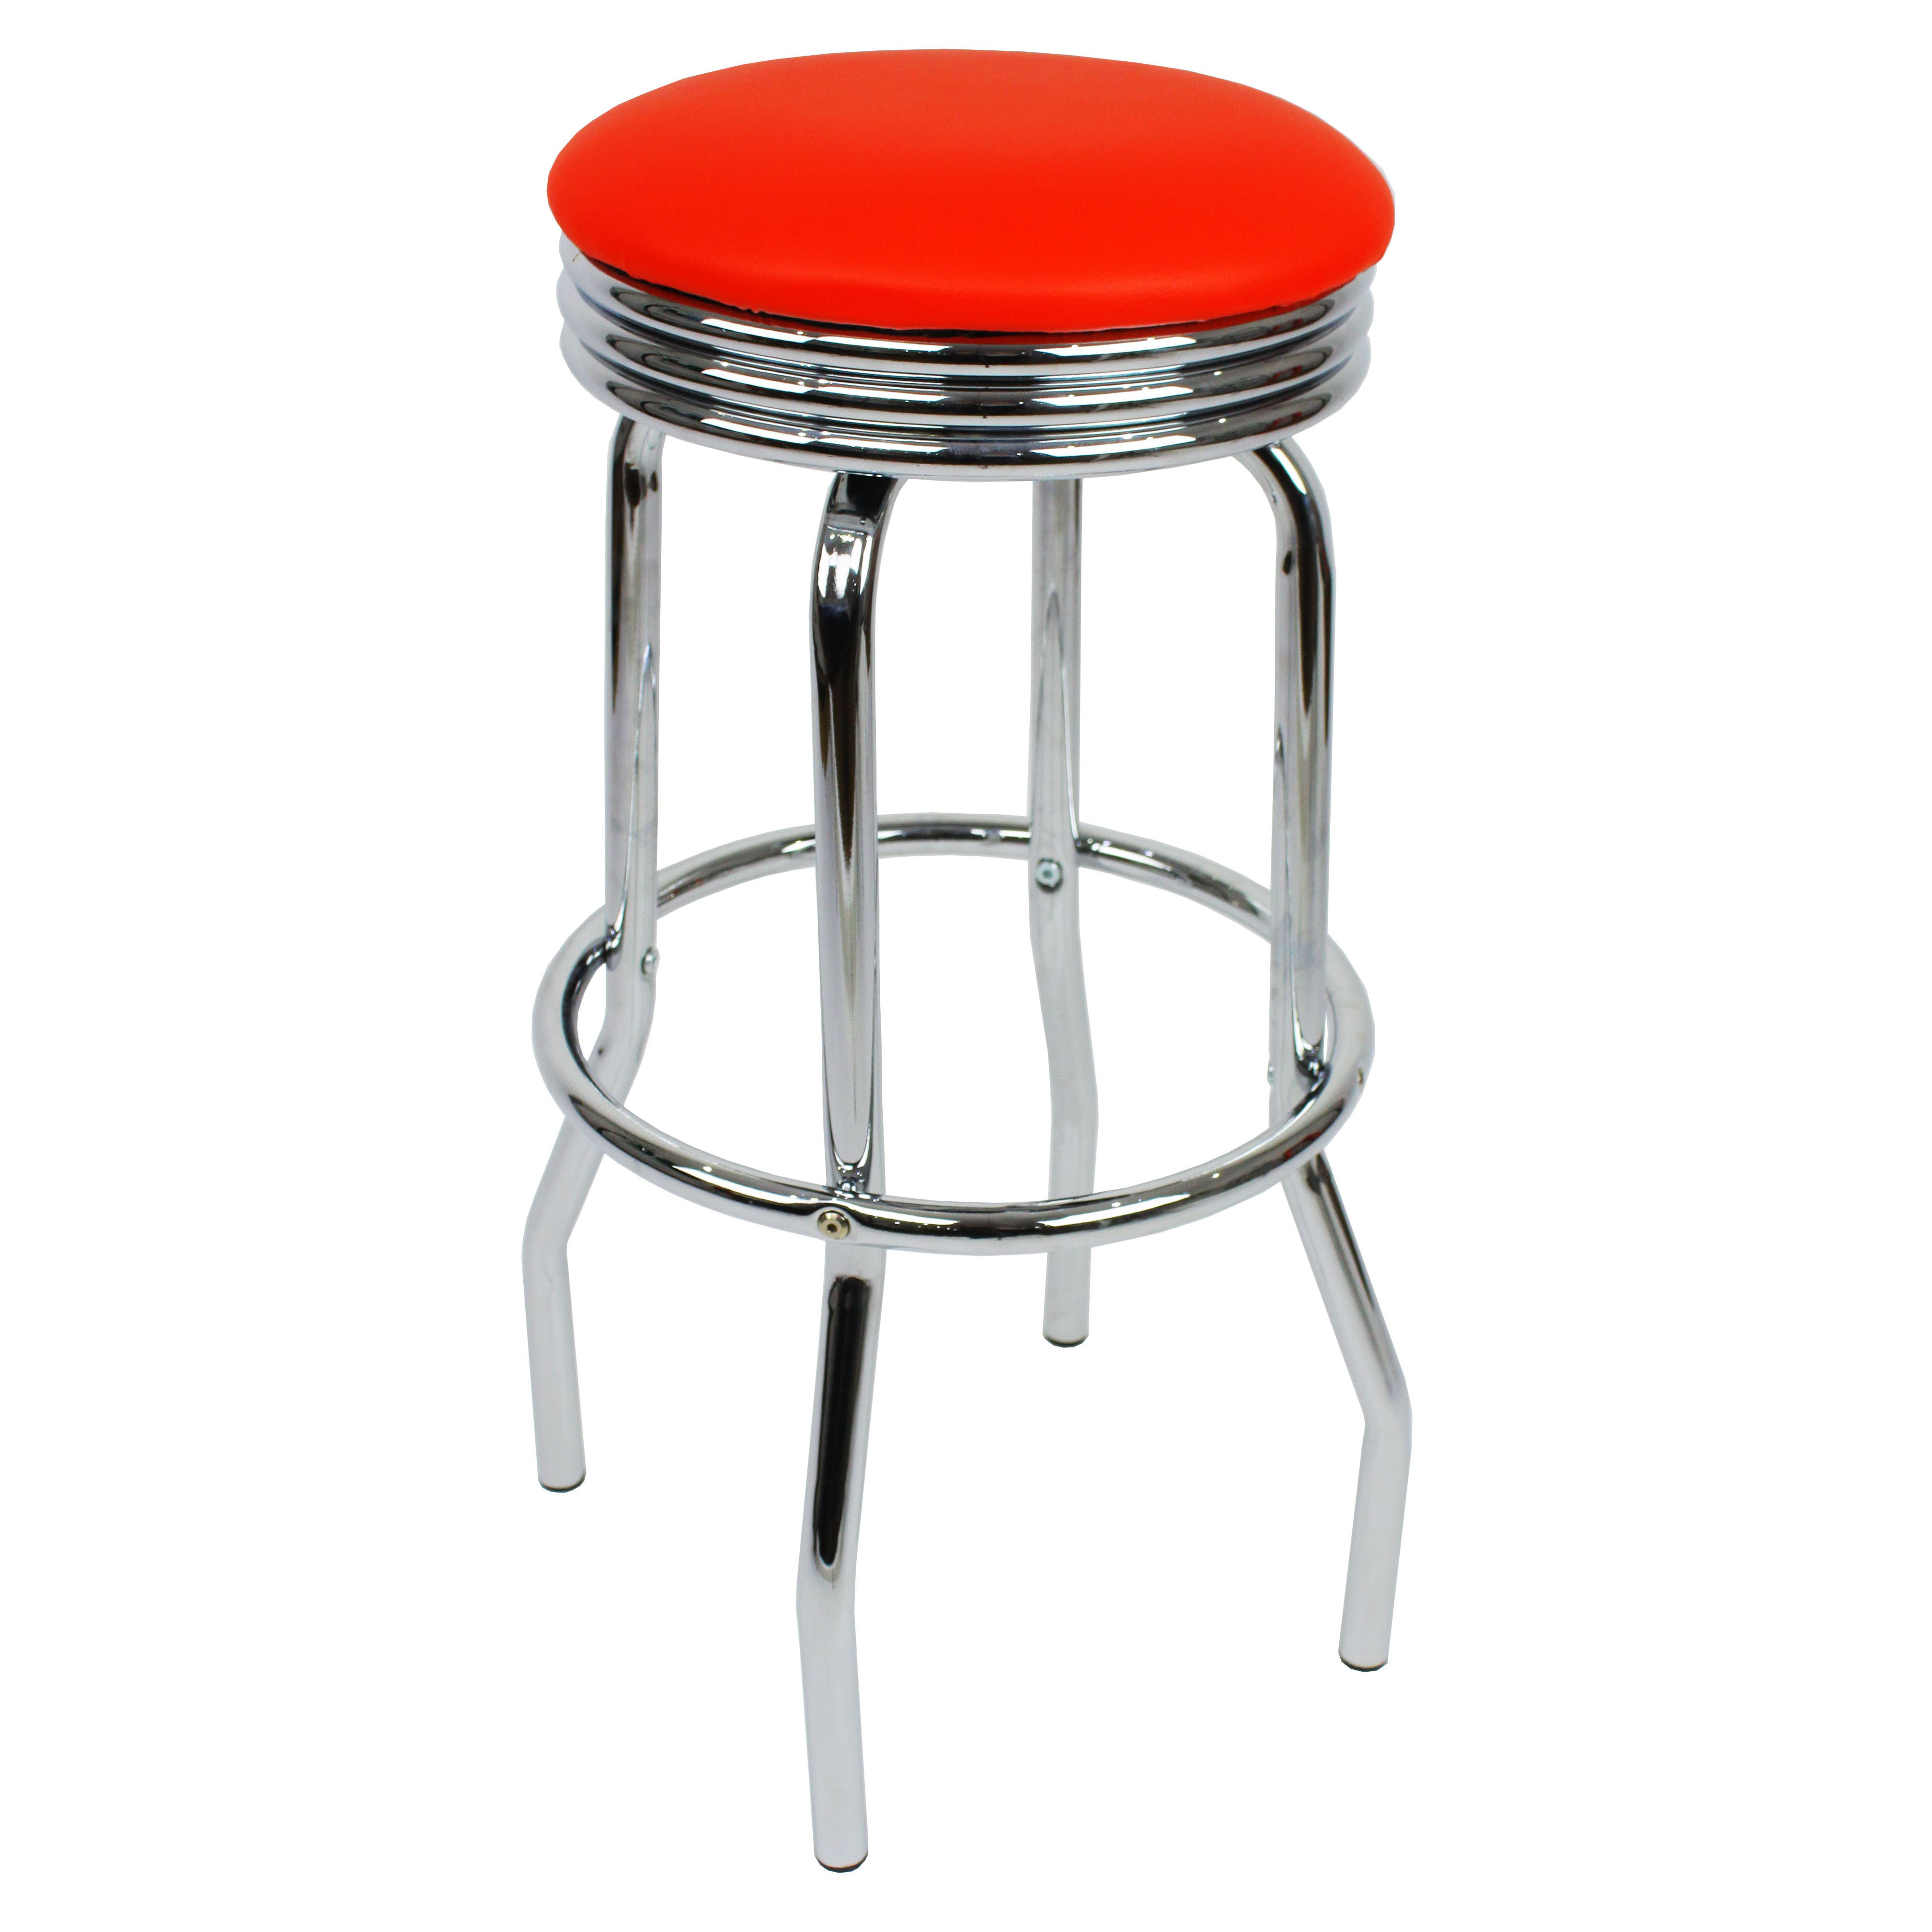 Retro Bar Stool - Red